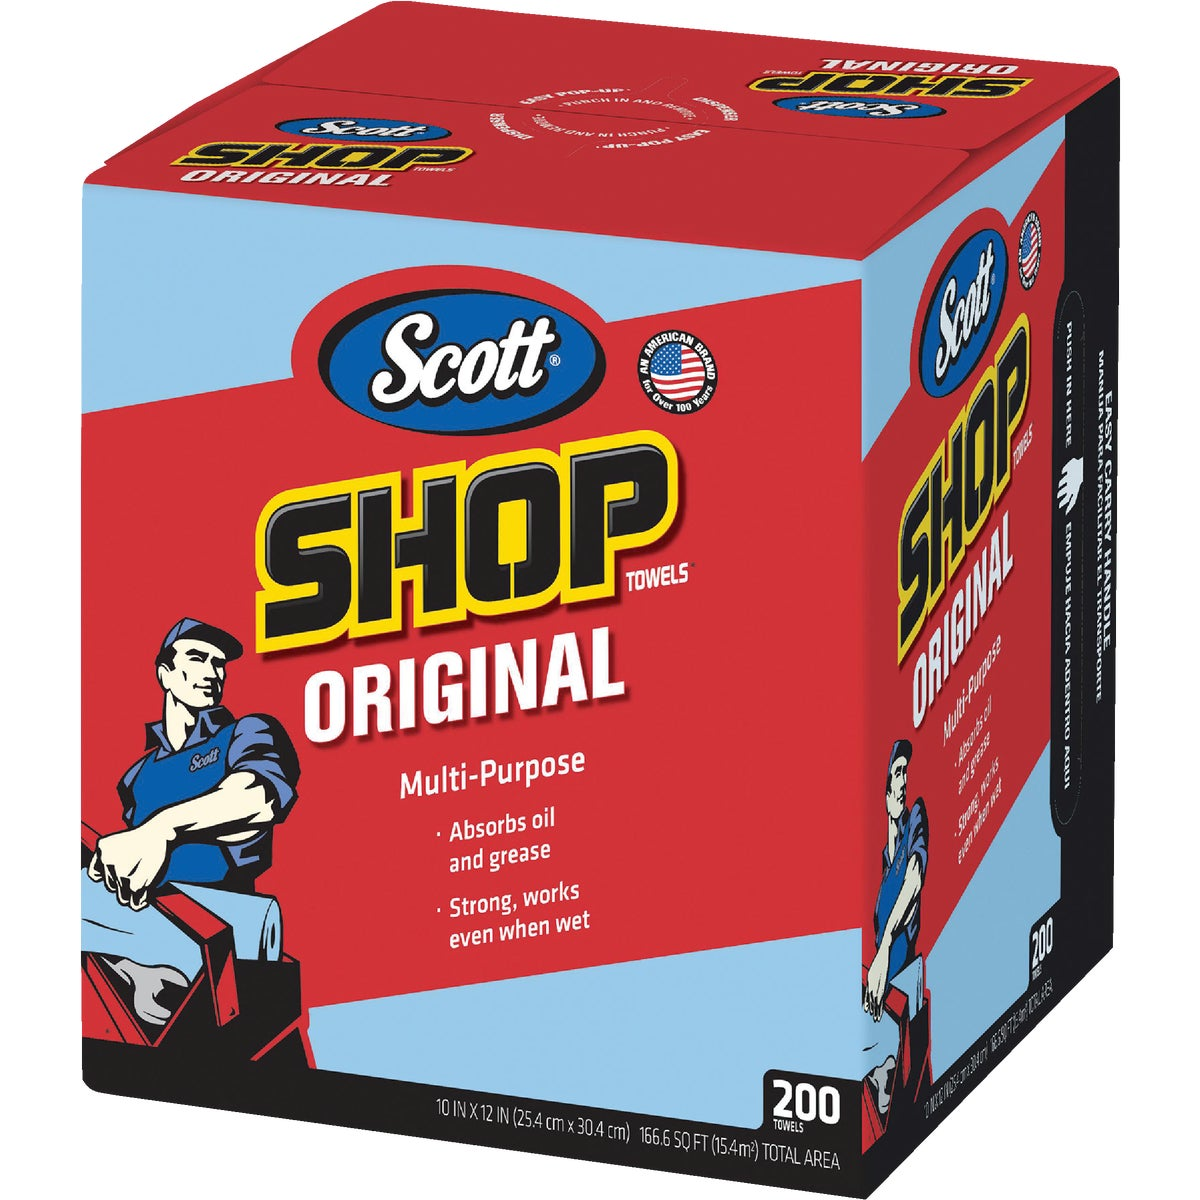 200CT BOX SHOP TOWEL - 75190 by Kimberly Clark Scott